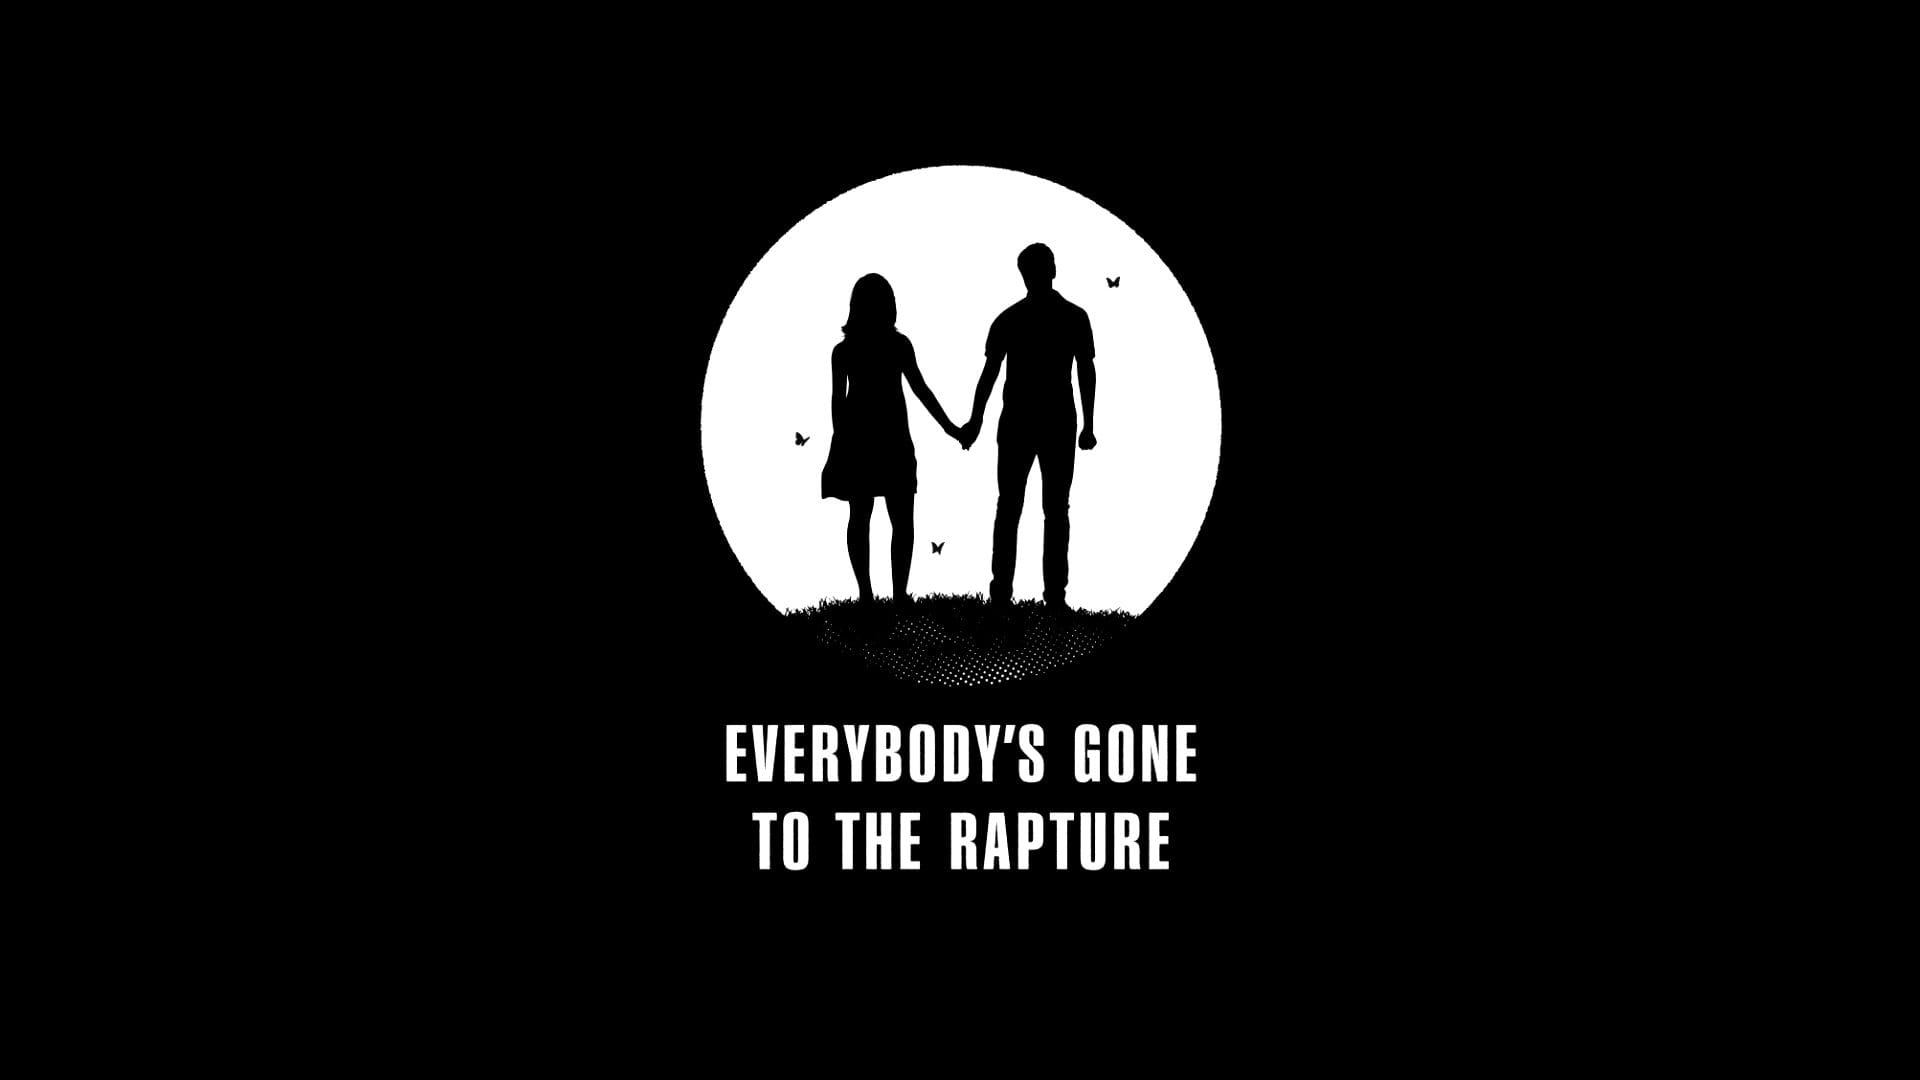 Everybody's Gone to the Rapture For mobile